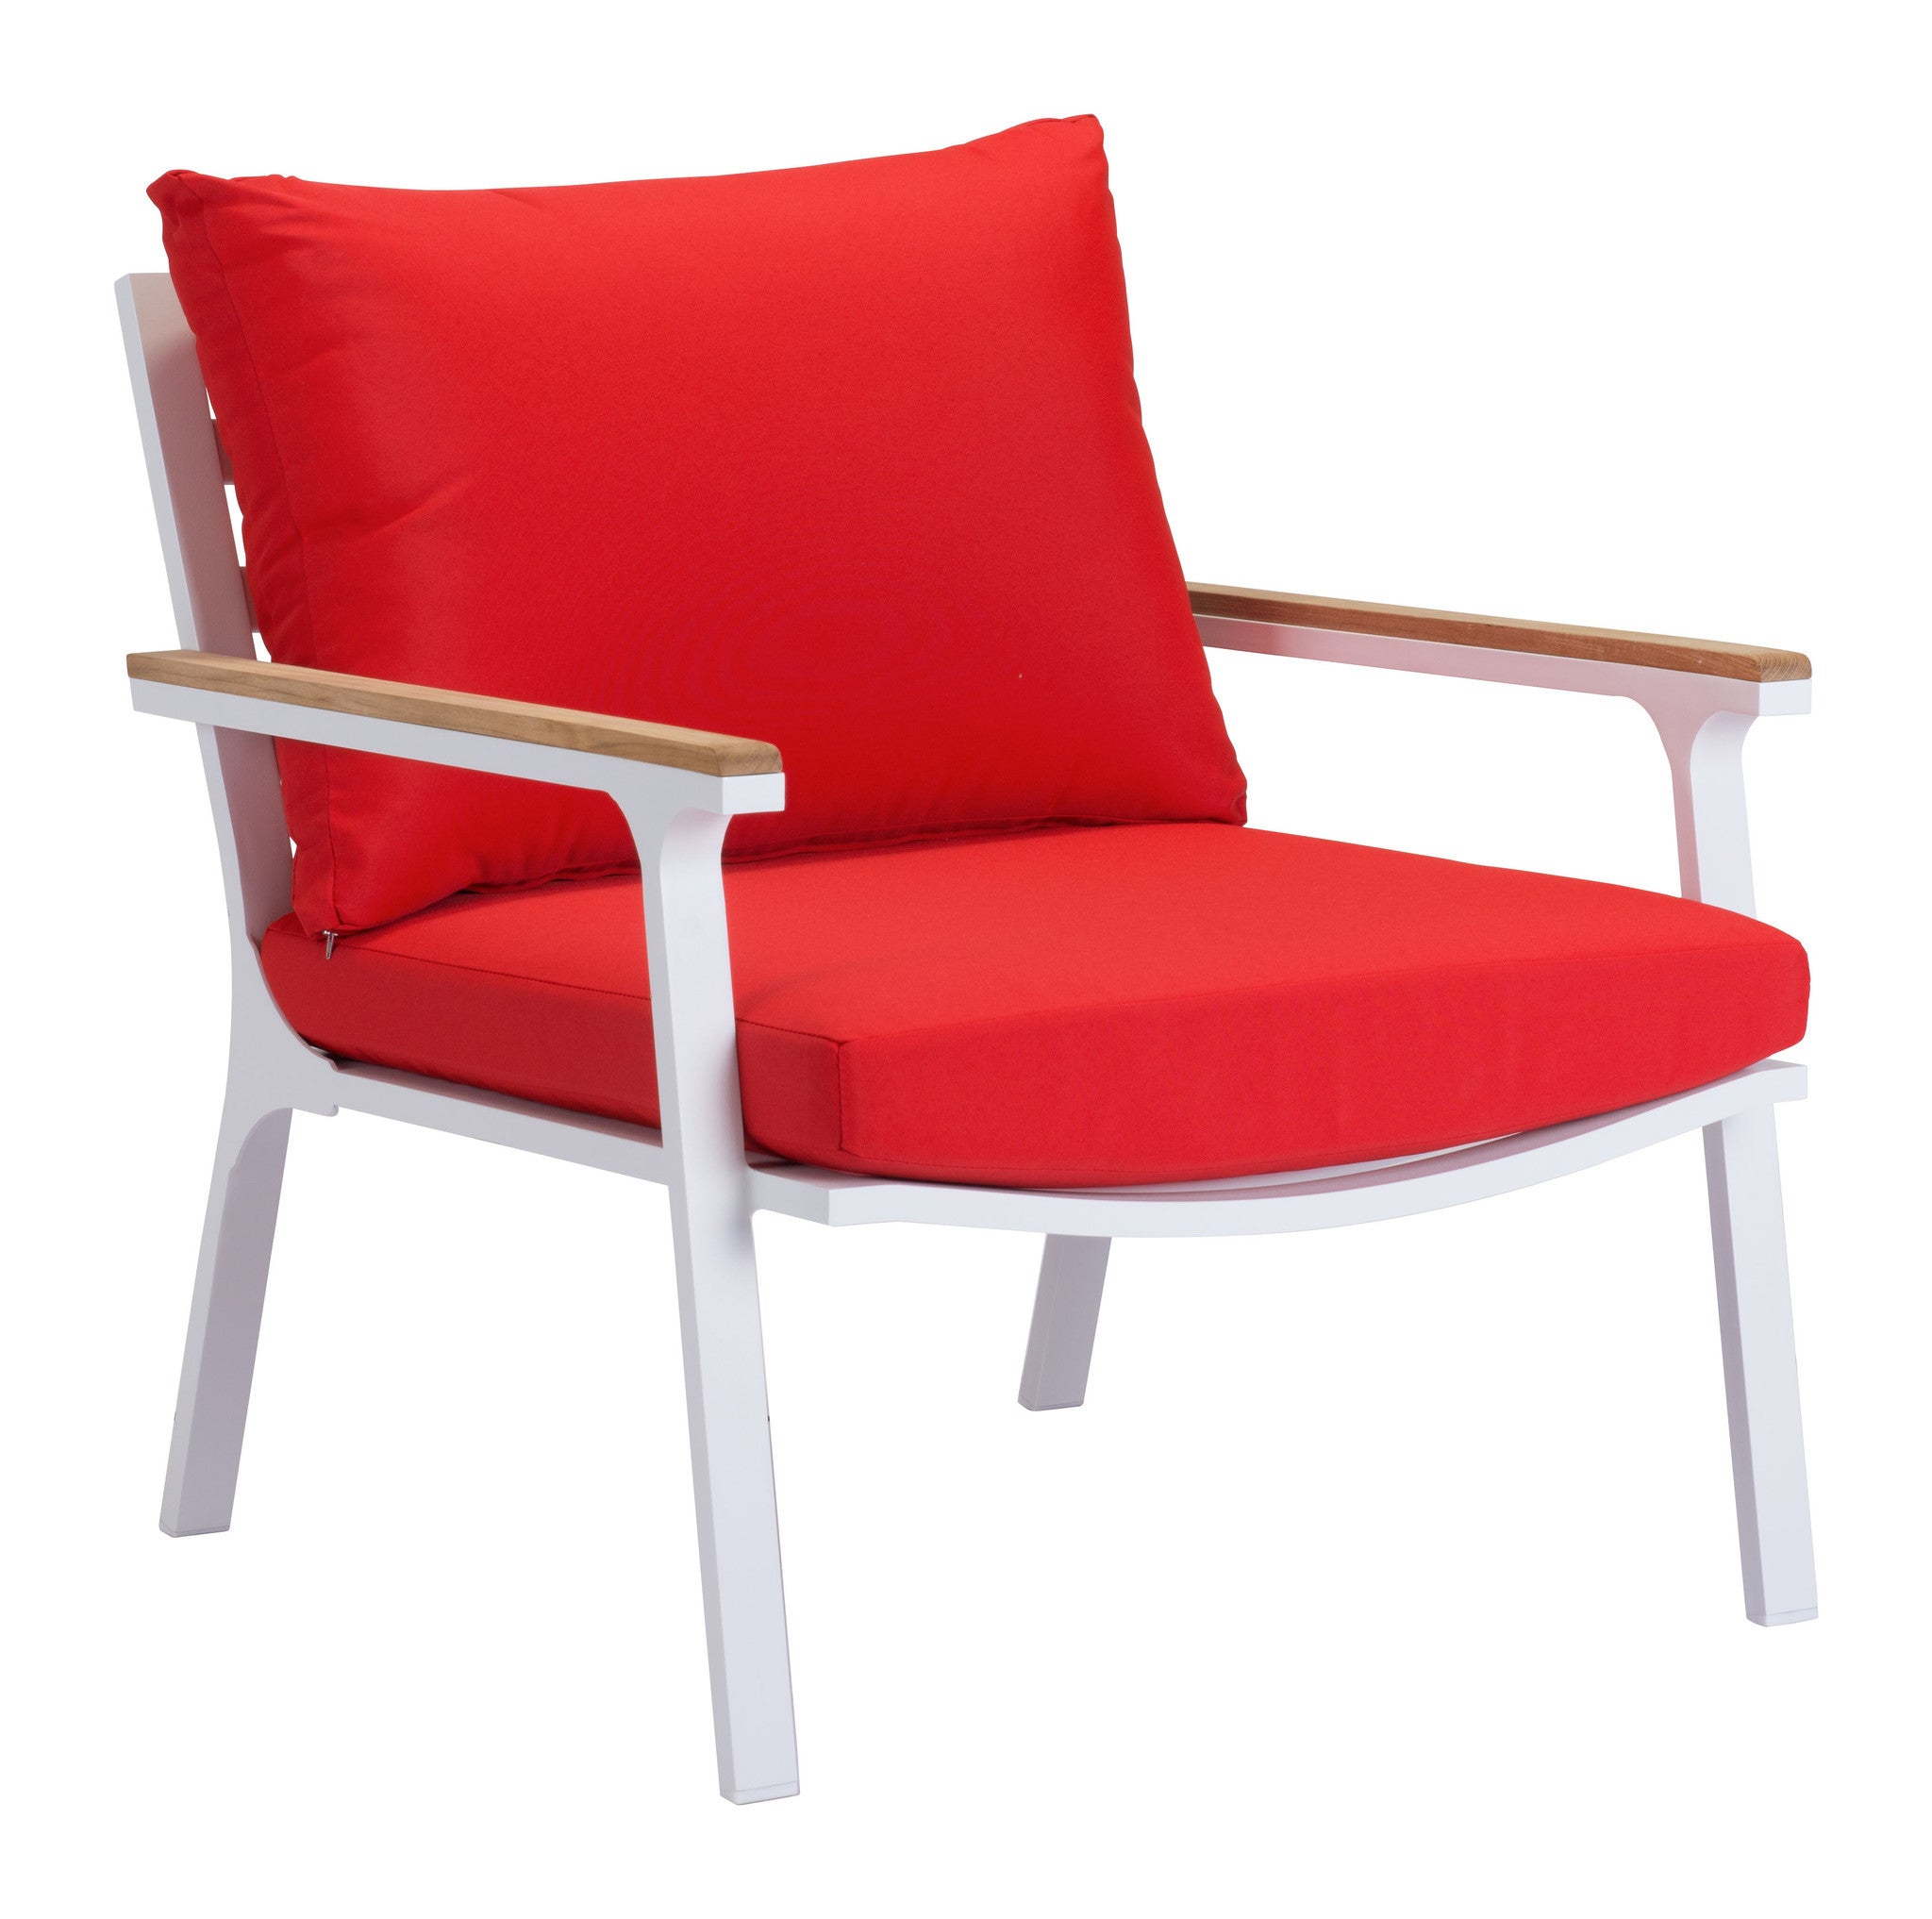 Pier Ave Outdoor Arm Chair Set of 2 WHITE RED – Apt2B